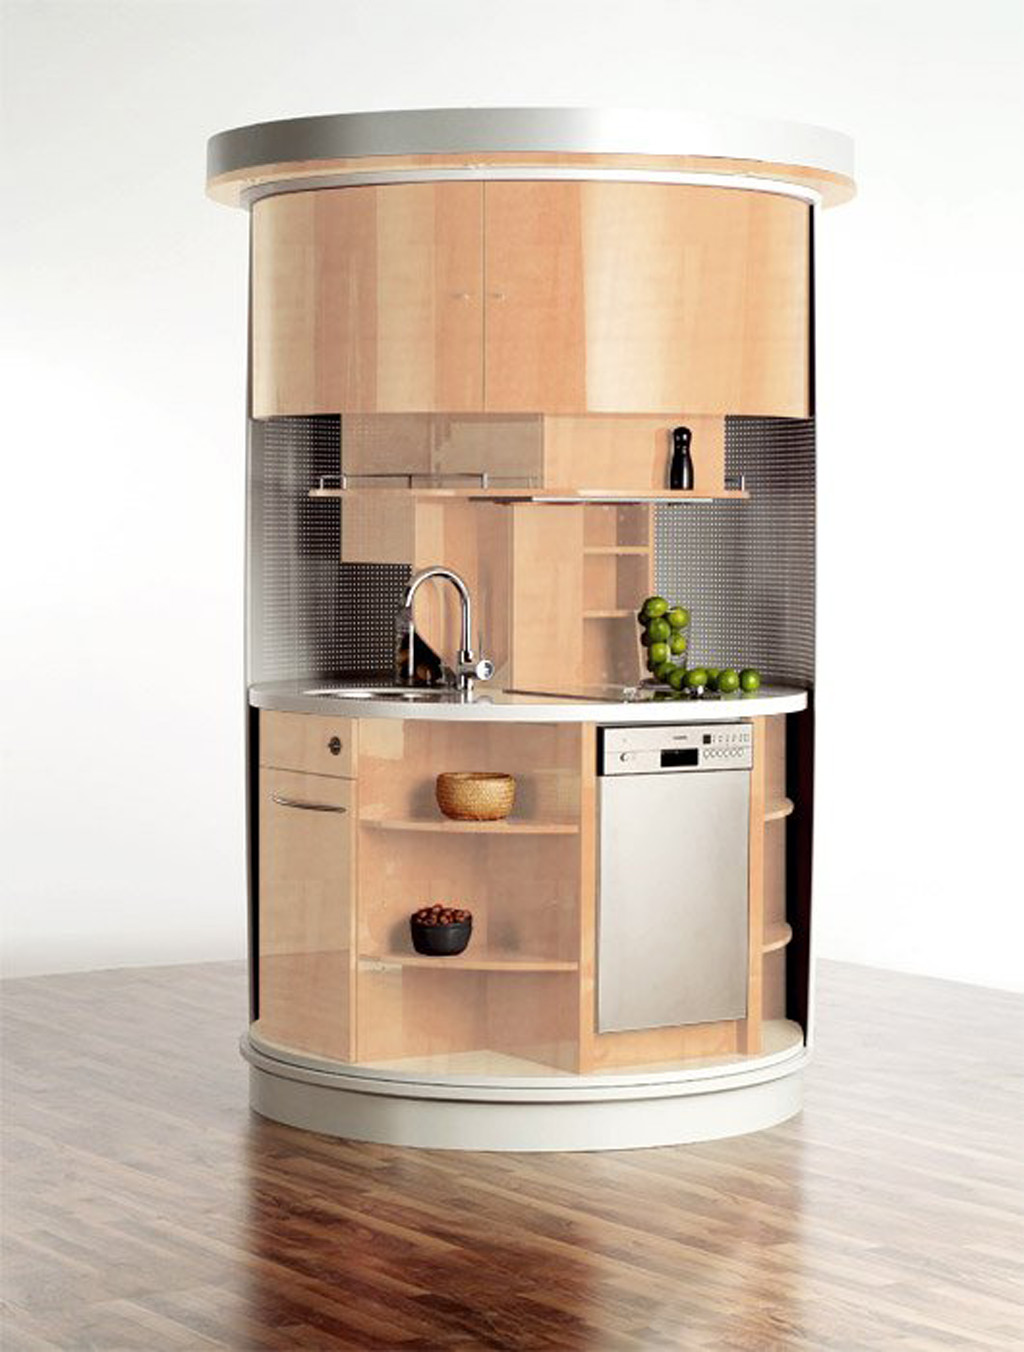 round-fashionable-kitchen-appliance-designs Top 25 Futuristic Kitchen Designs